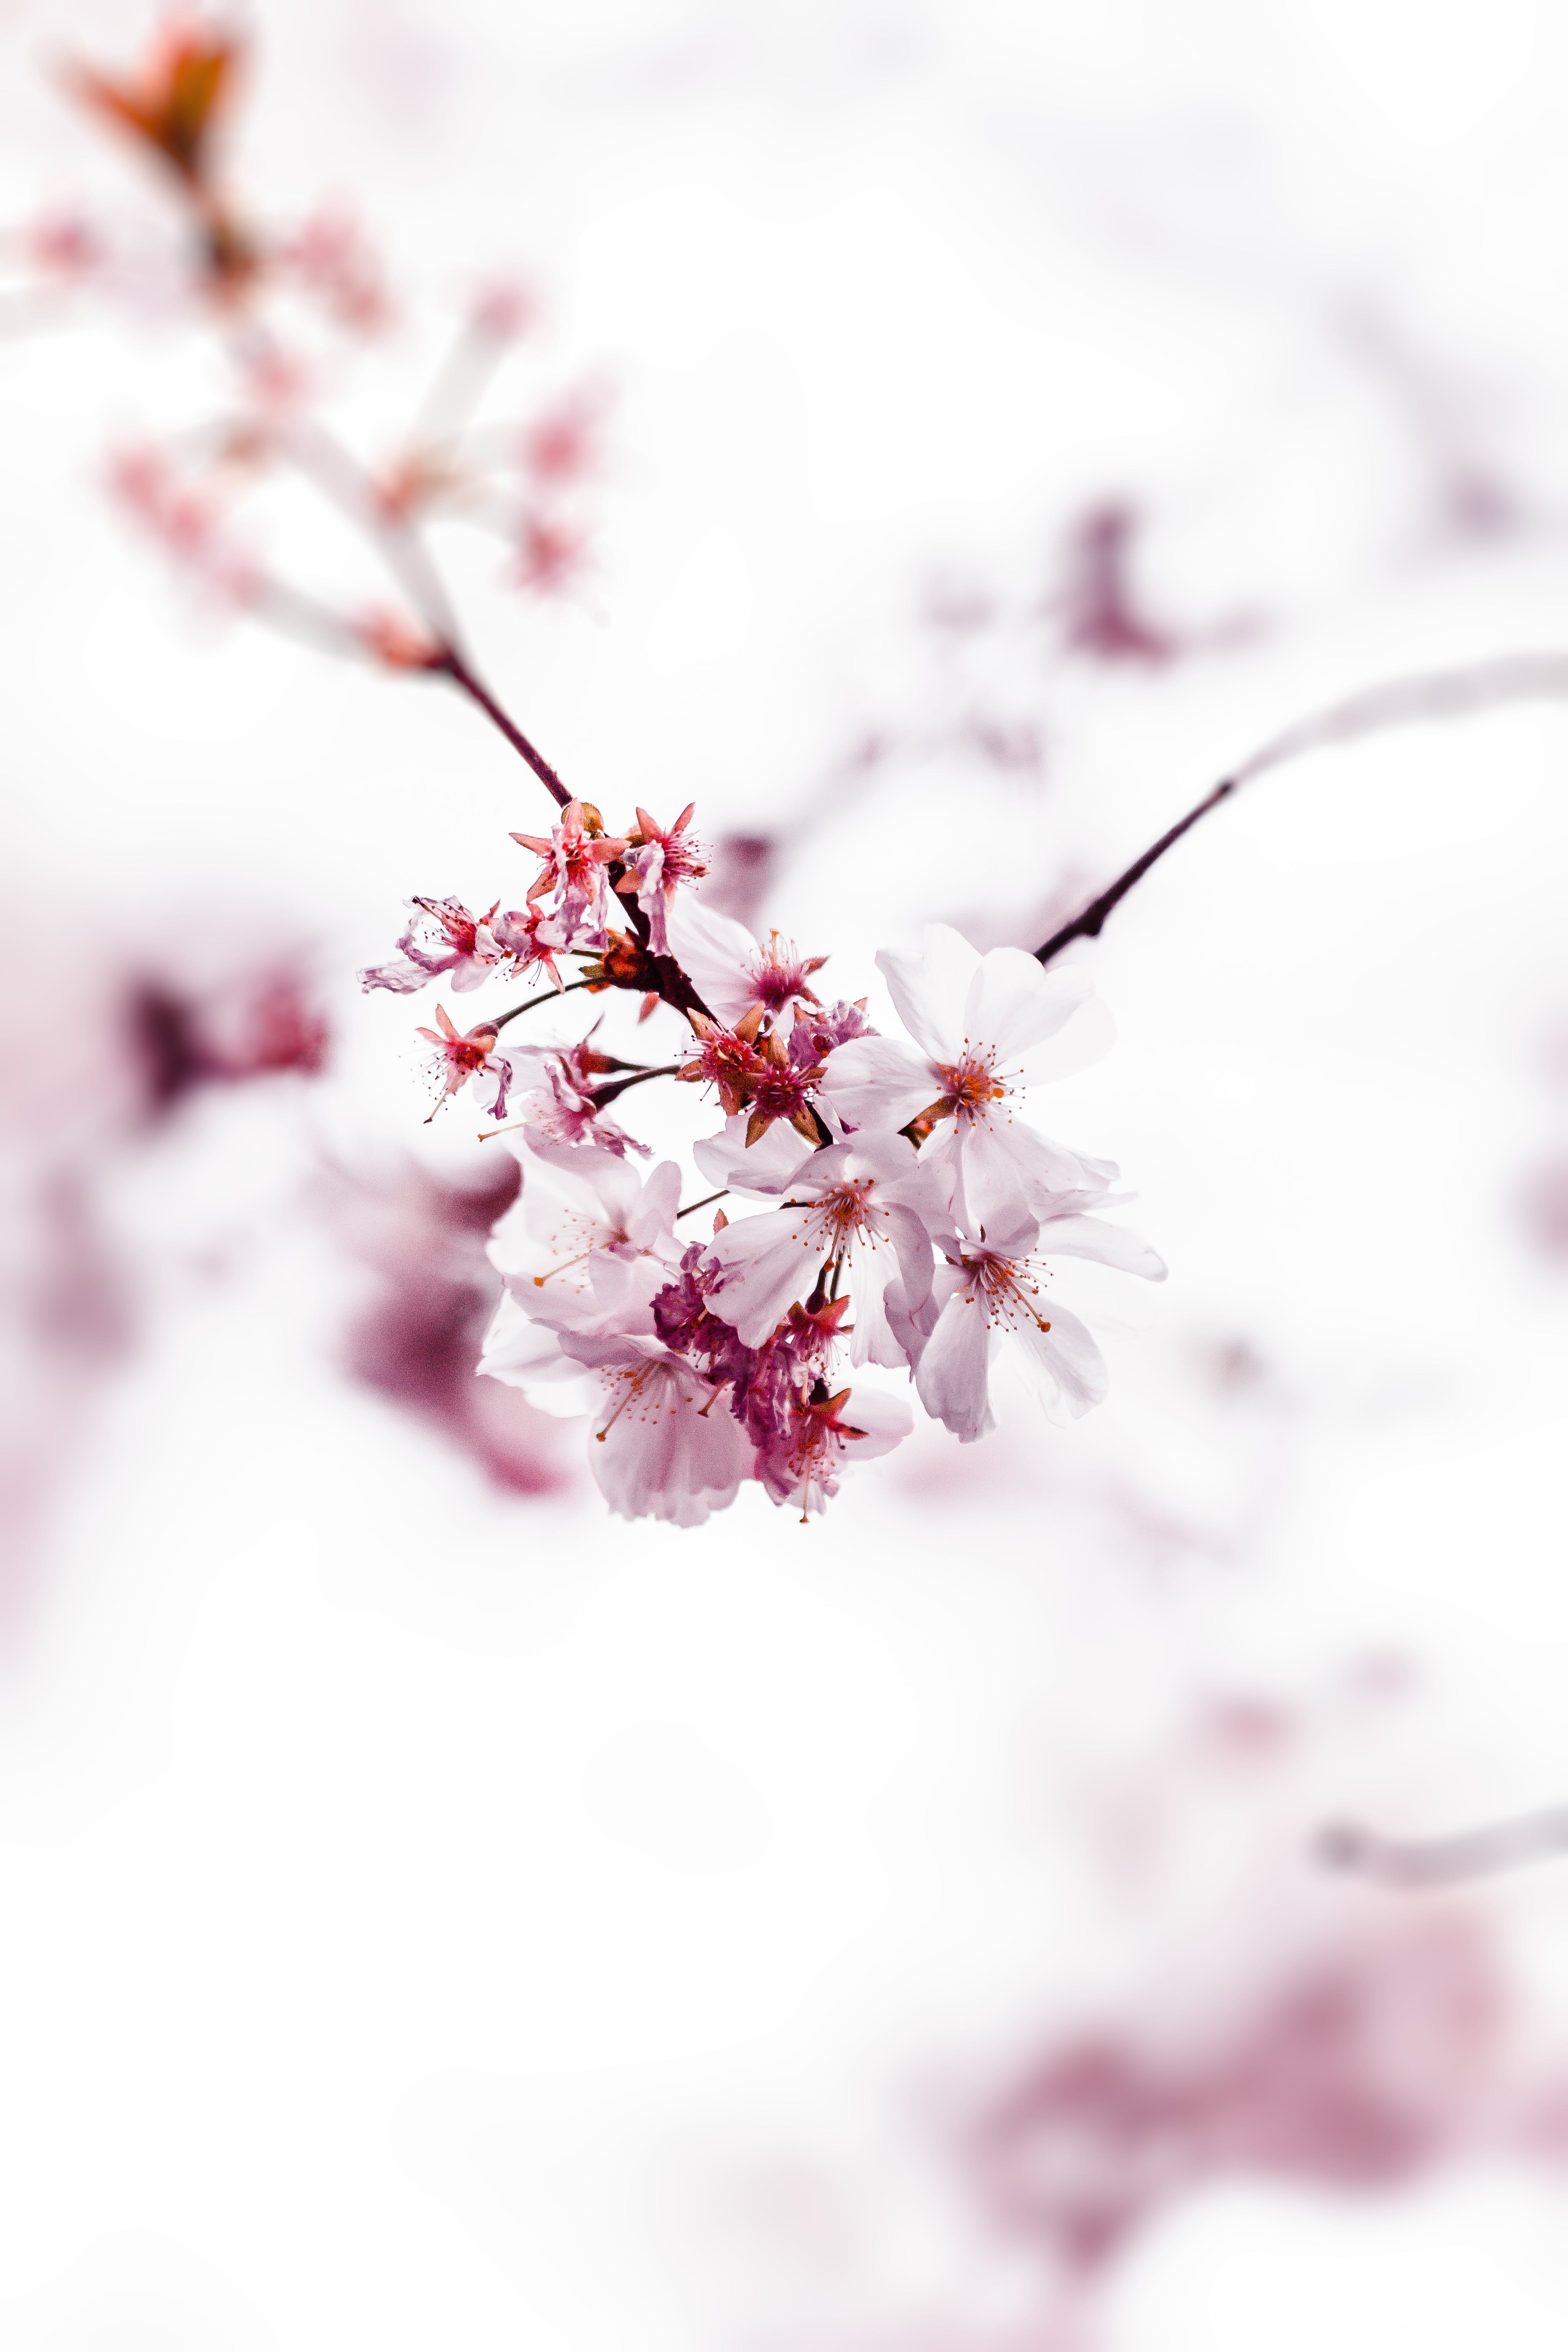 Selective Focus Photo of Cherry Blossom